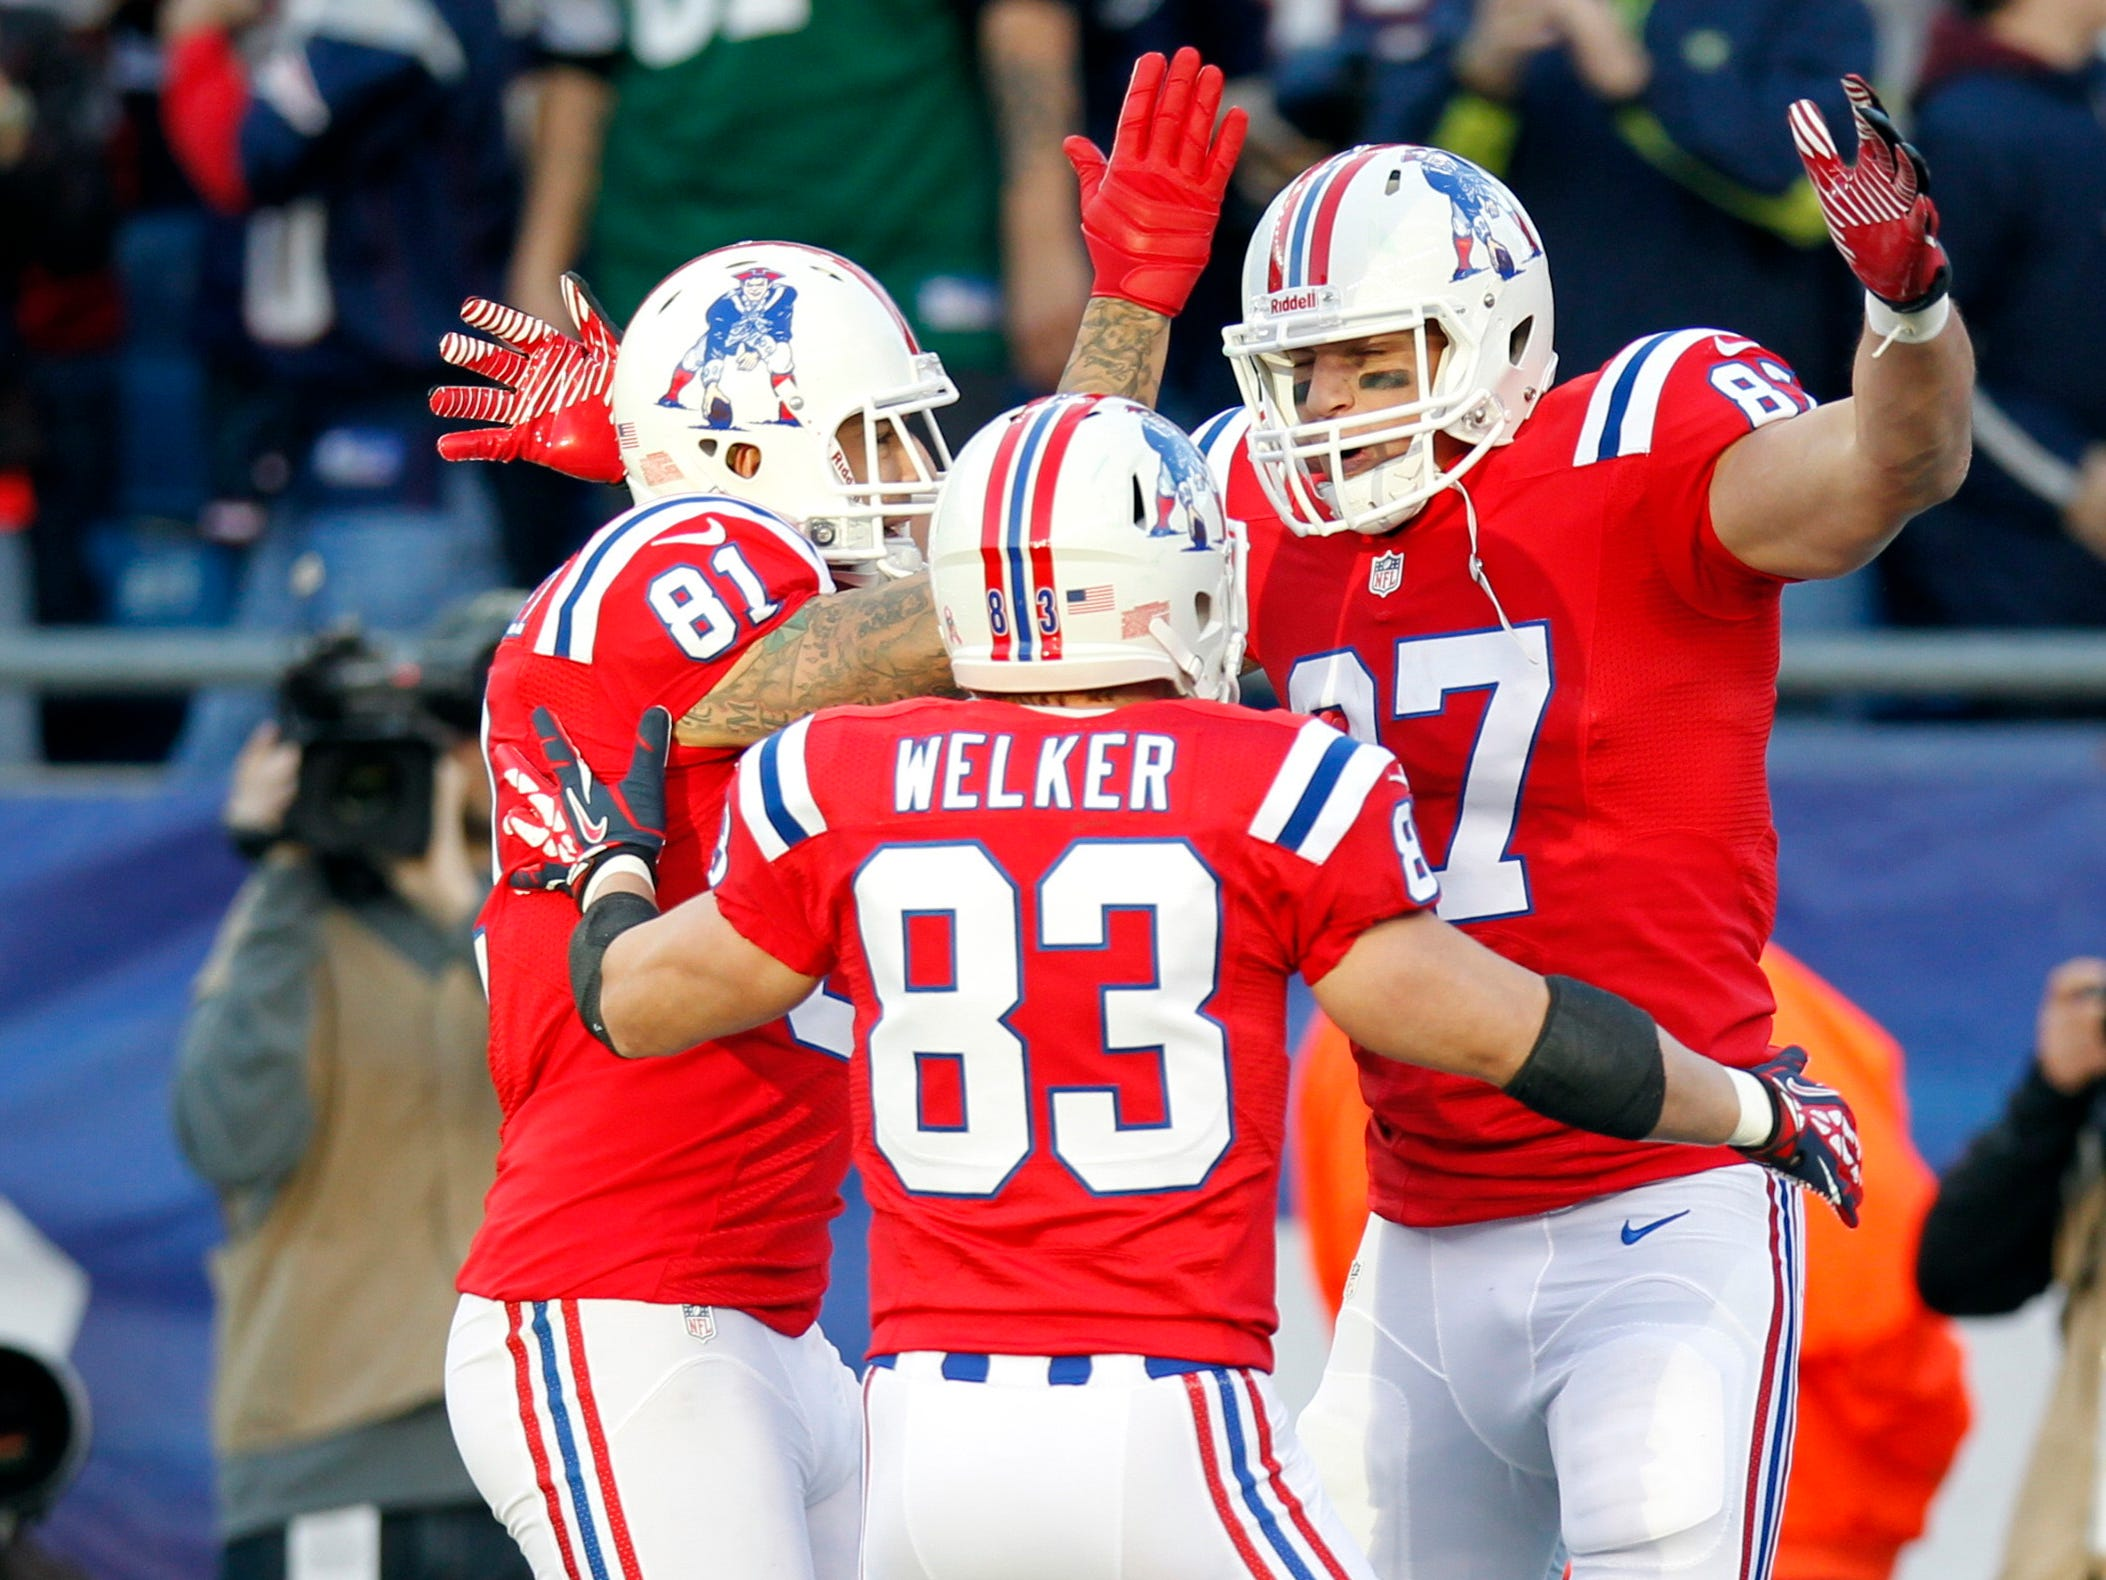 Oct. 21, 2012: Rob Gronkowski is congratulated by tight end Aaron Hernandez (81) and wide receiver Wes Welker (83) after scoring a touchdown during the first quarter against the New York Jets at Gillette Stadium.